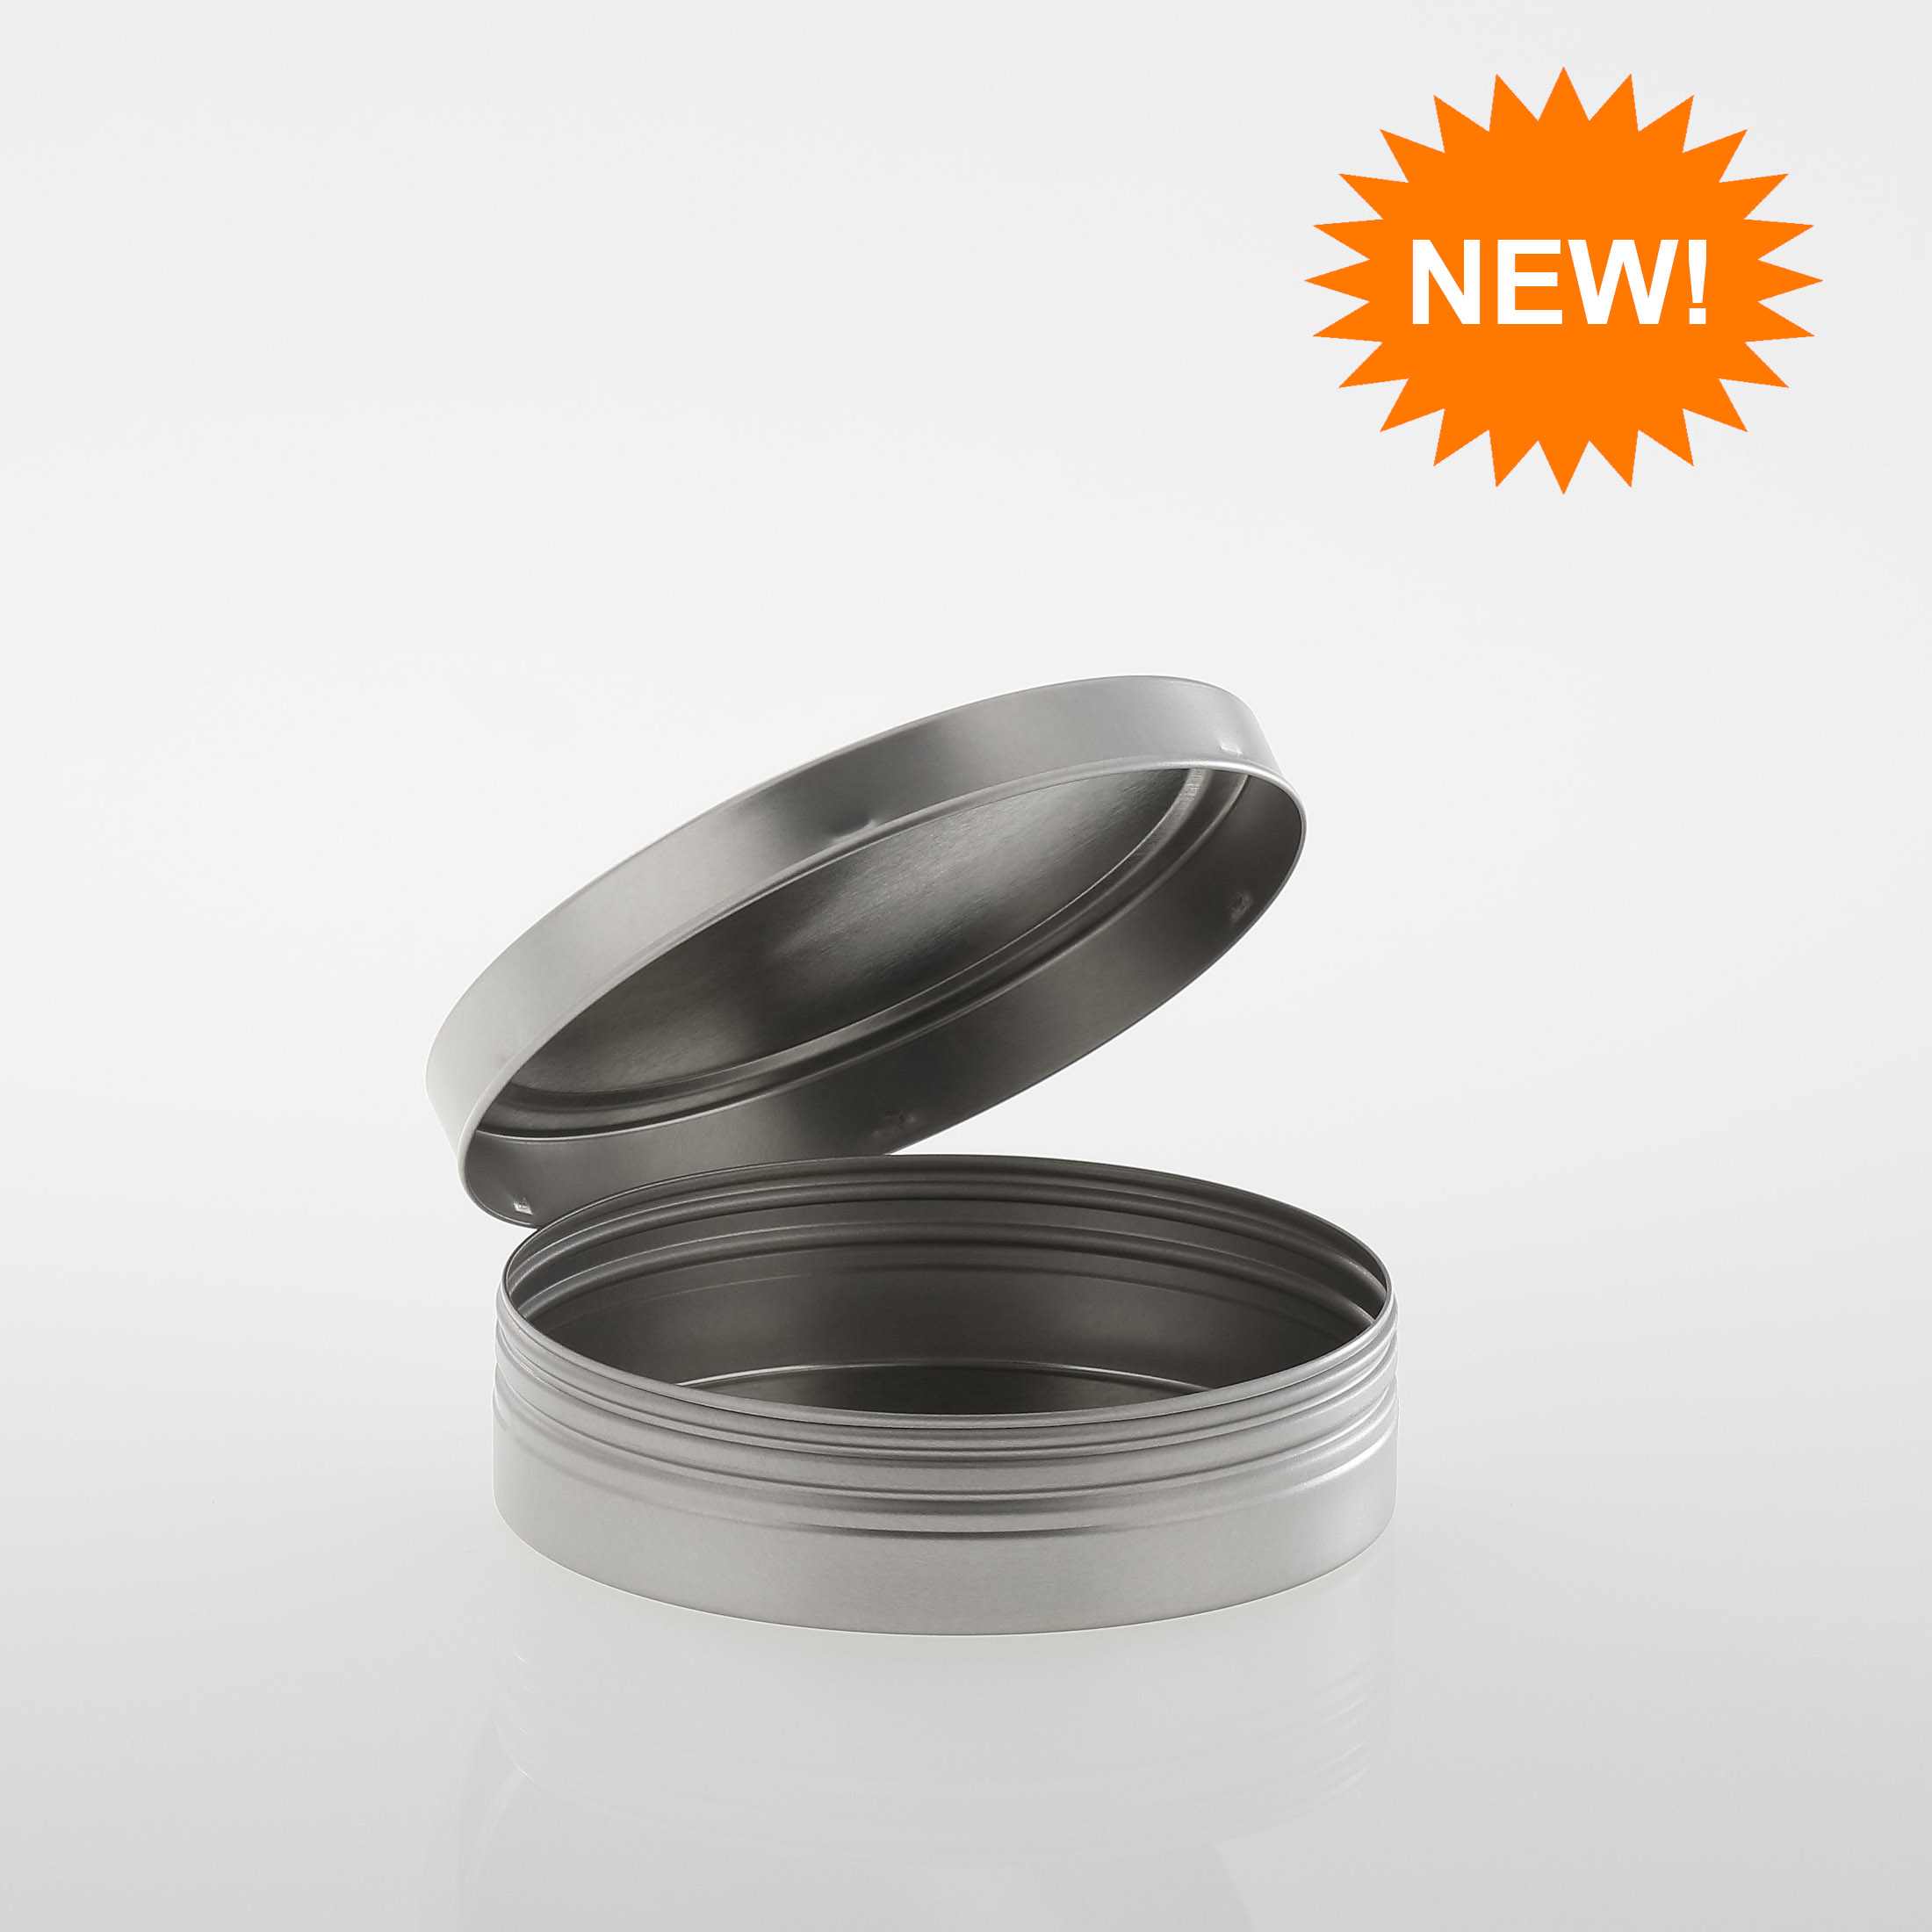 !NEW! Slip Lid Cans 92/23 150 ml BPA-free snap-in bead